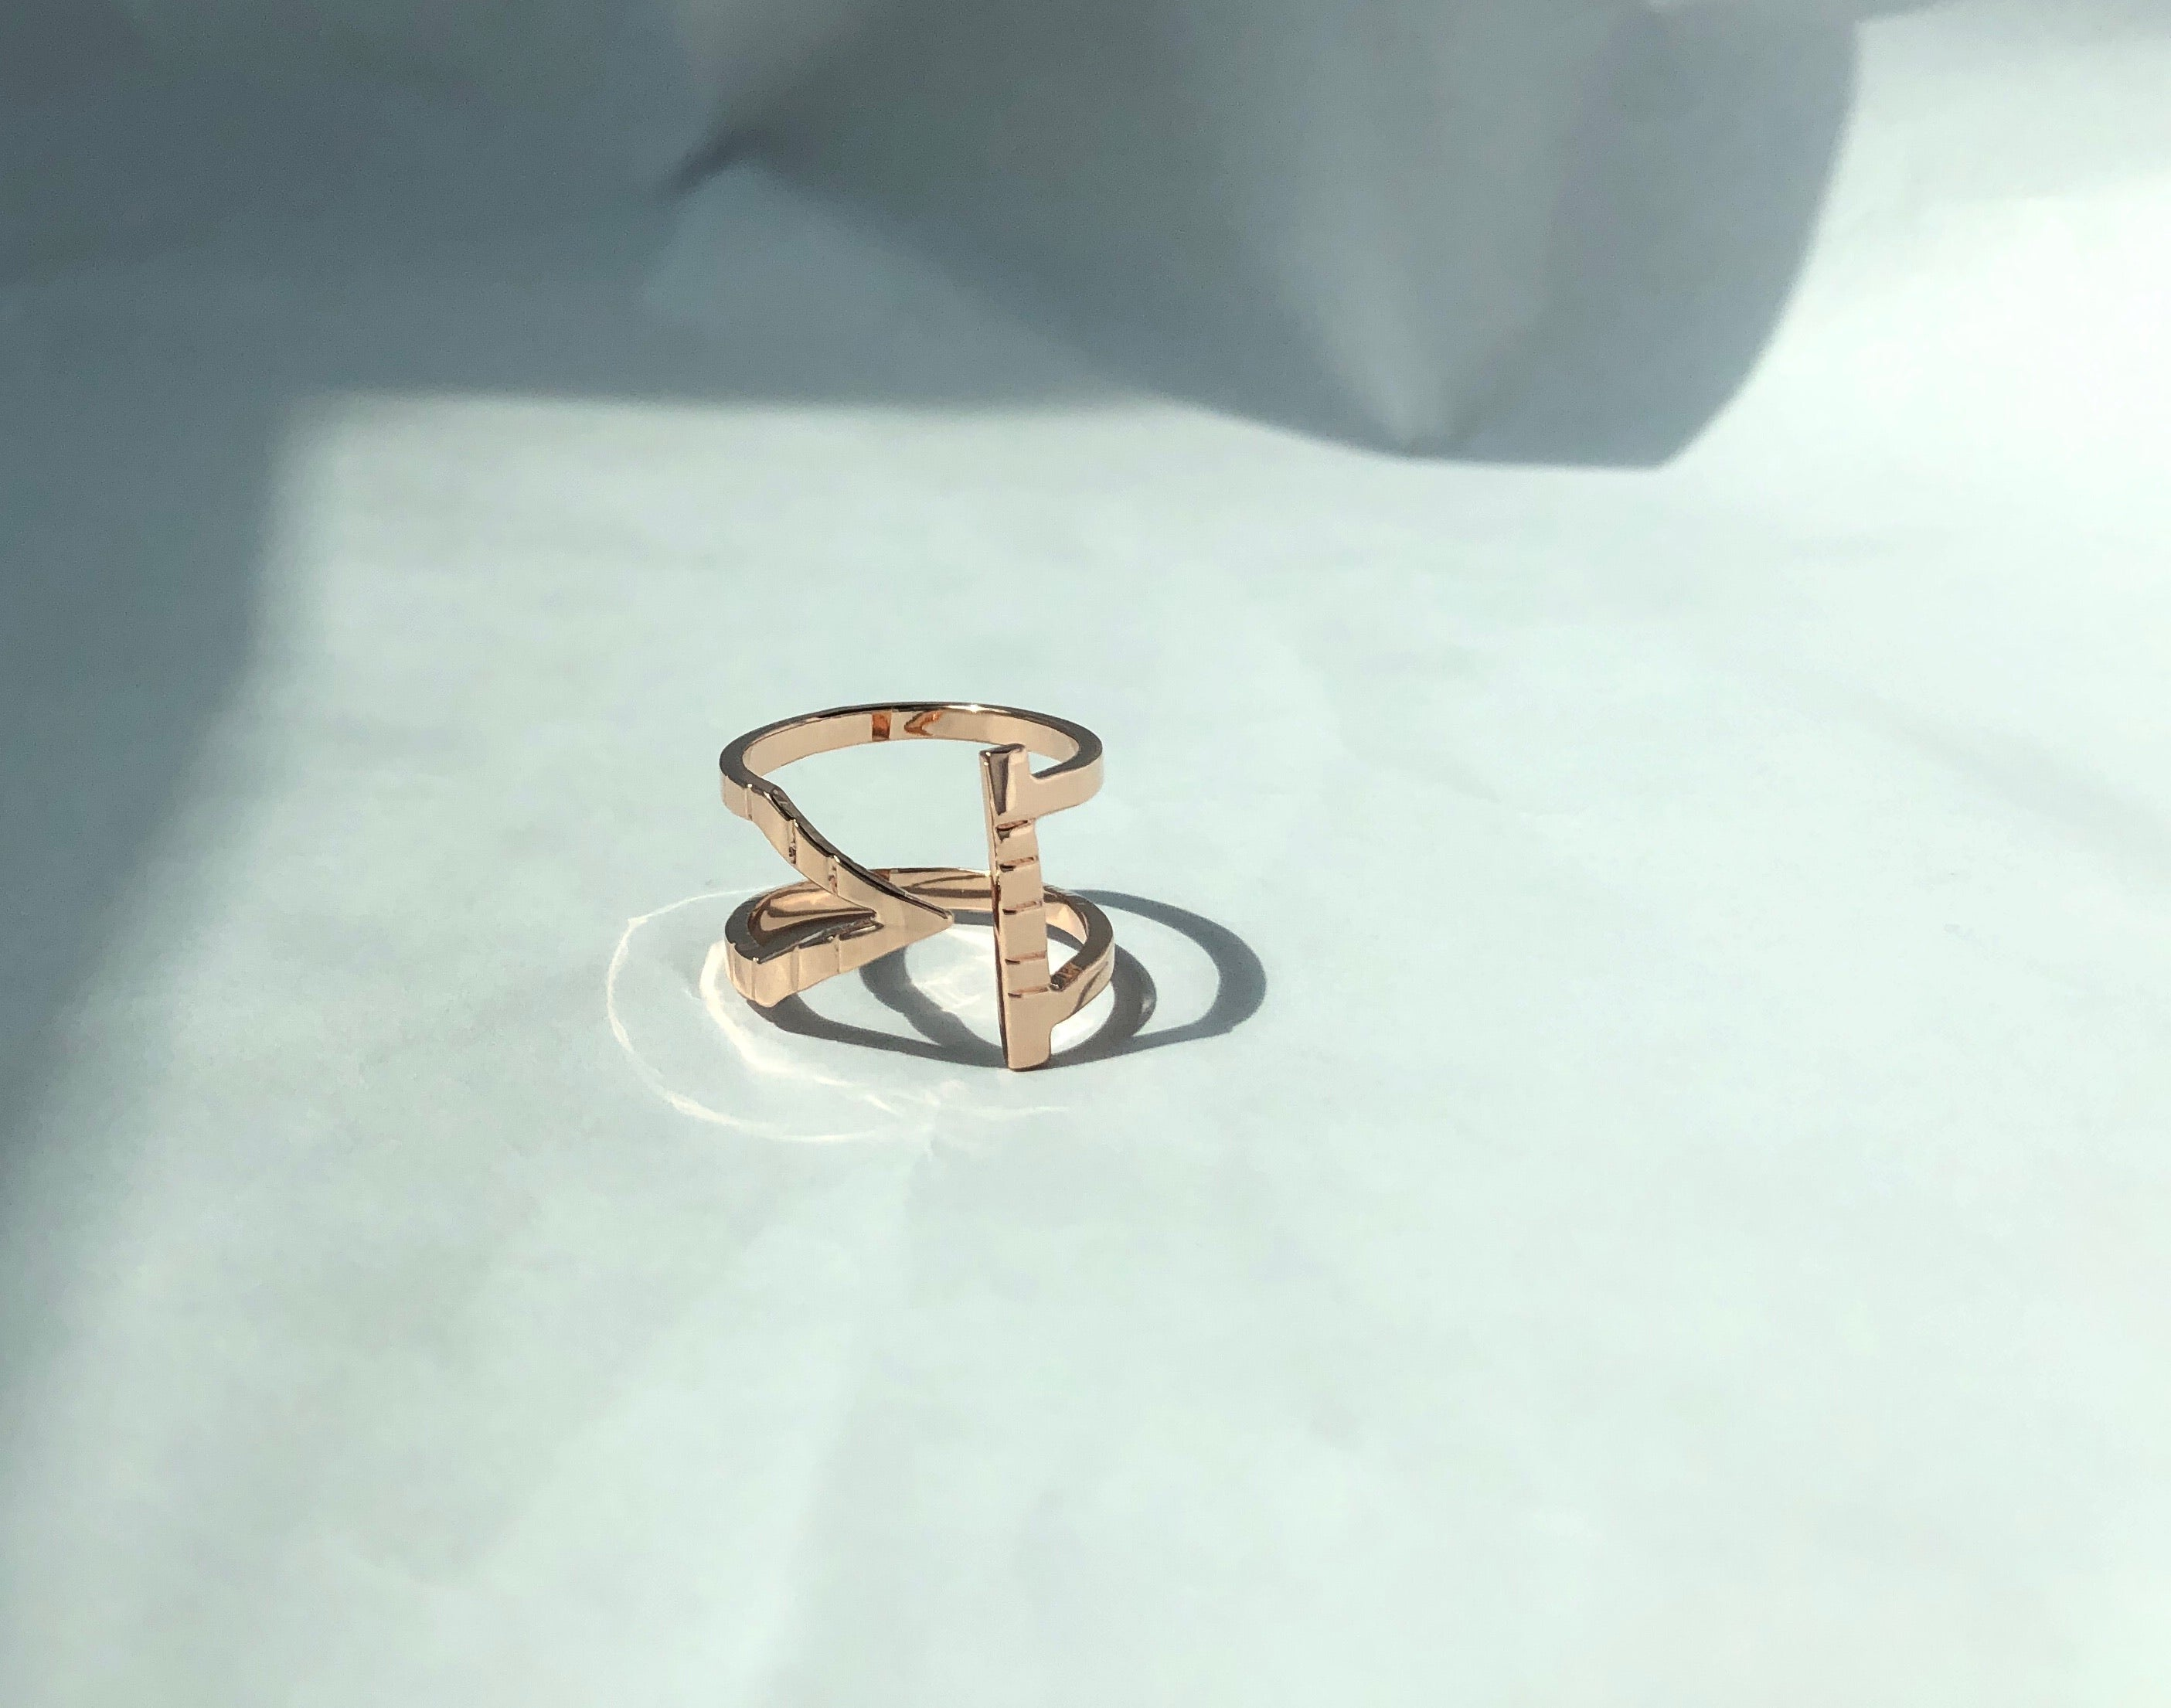 stylish ringstack rosegold sustainable jewellery recycled rings ethical accessories women